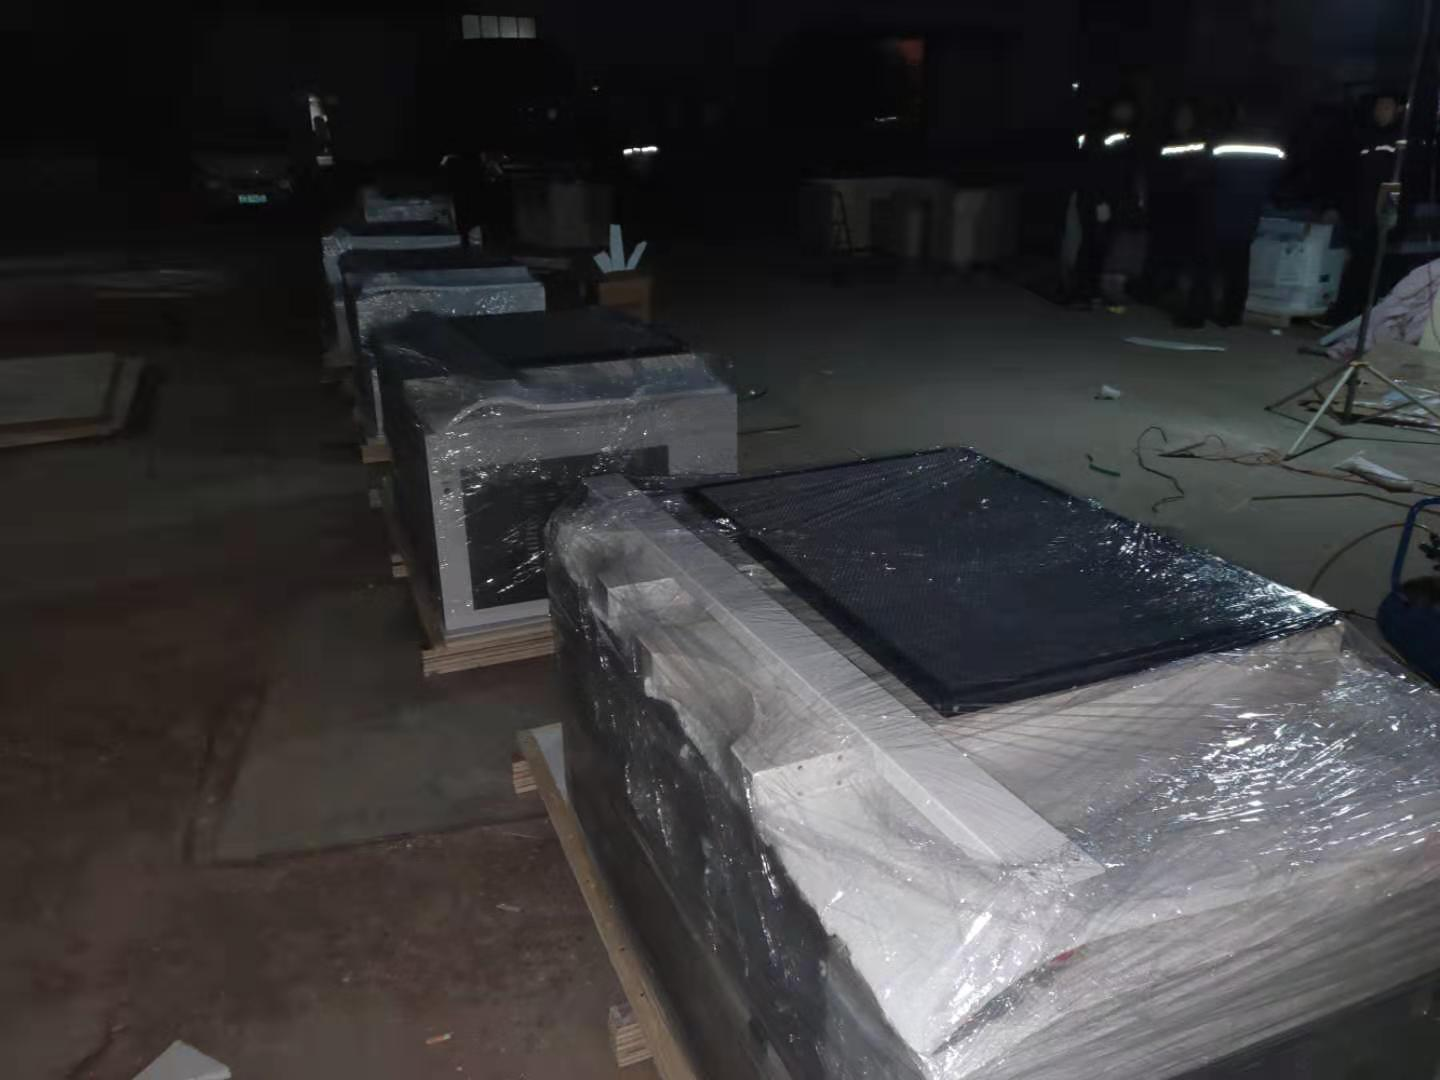 The 15 machines ordered by the customer are being packaged.